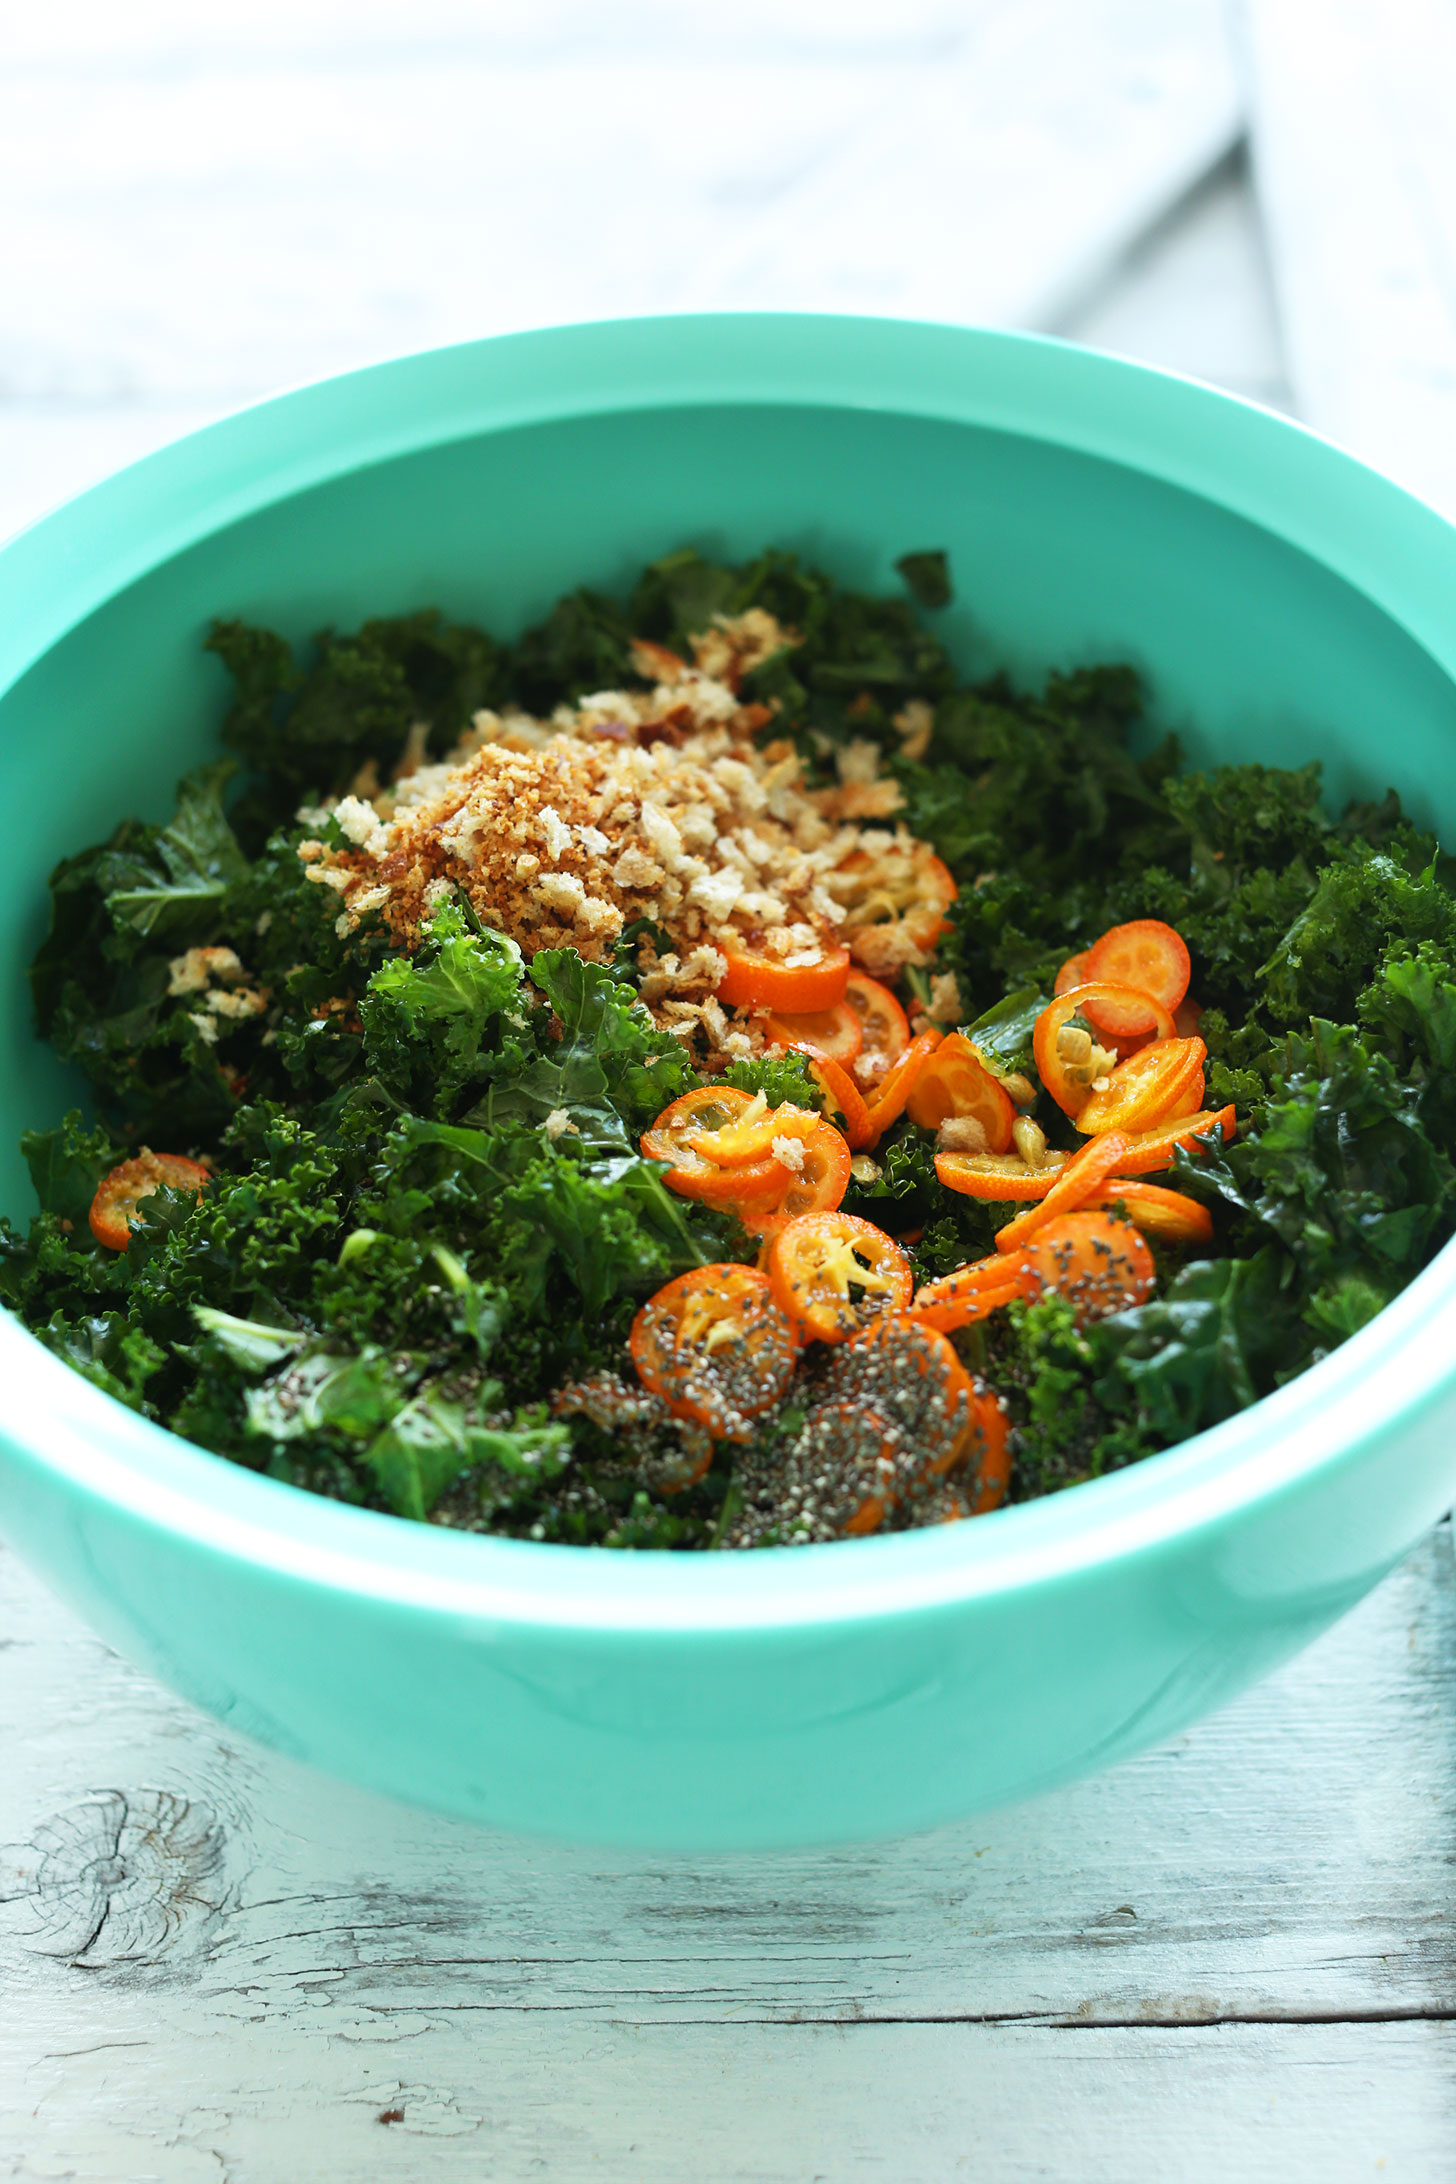 Big bowl of vegan Kale Salad with Kumquats, Chia Seeds, and Breadcrumbs